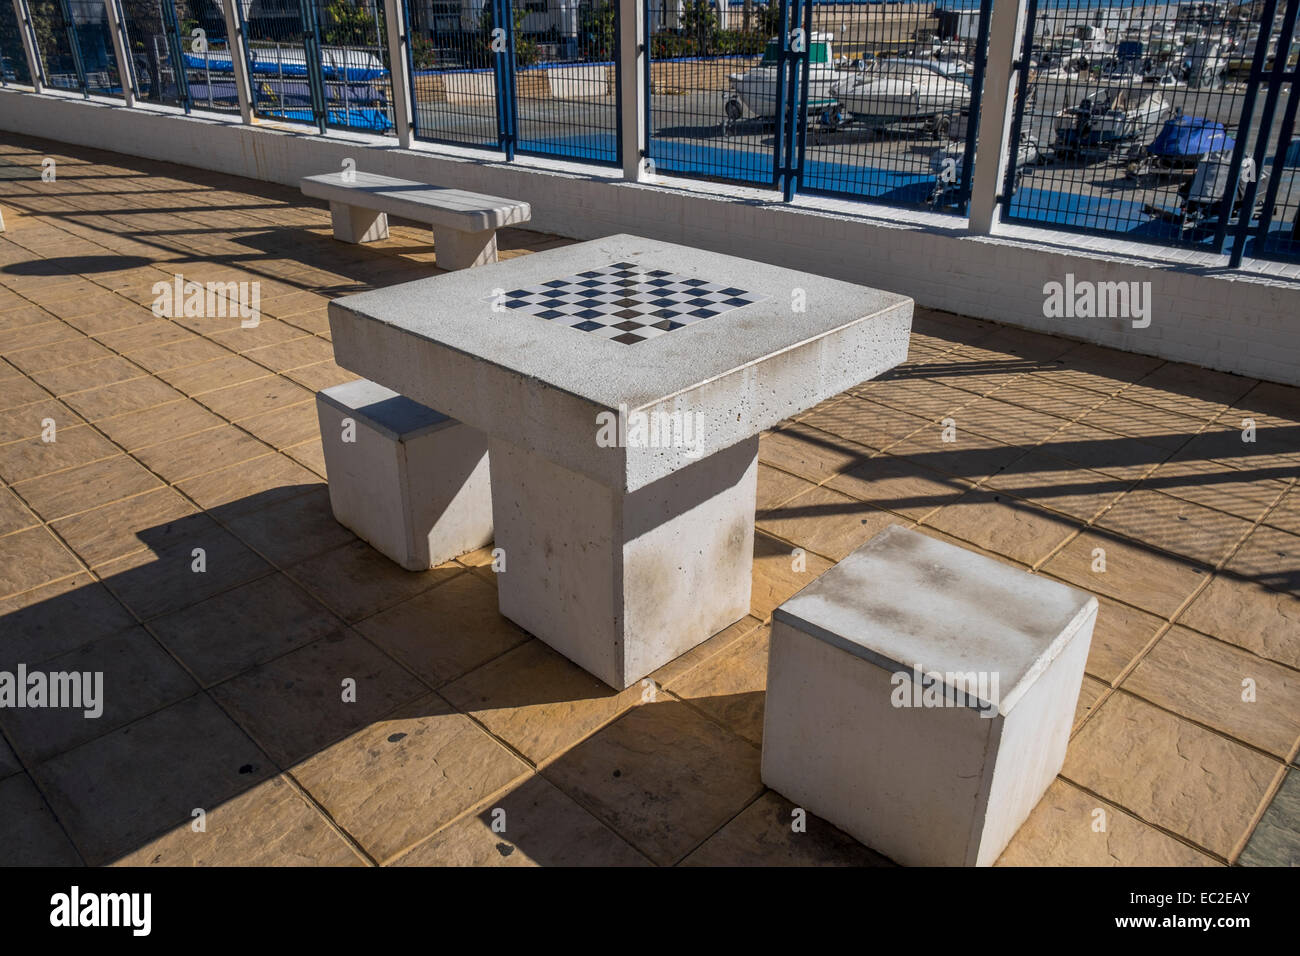 Superior An Outside Stone Chess Table With Stone Seats For Two People